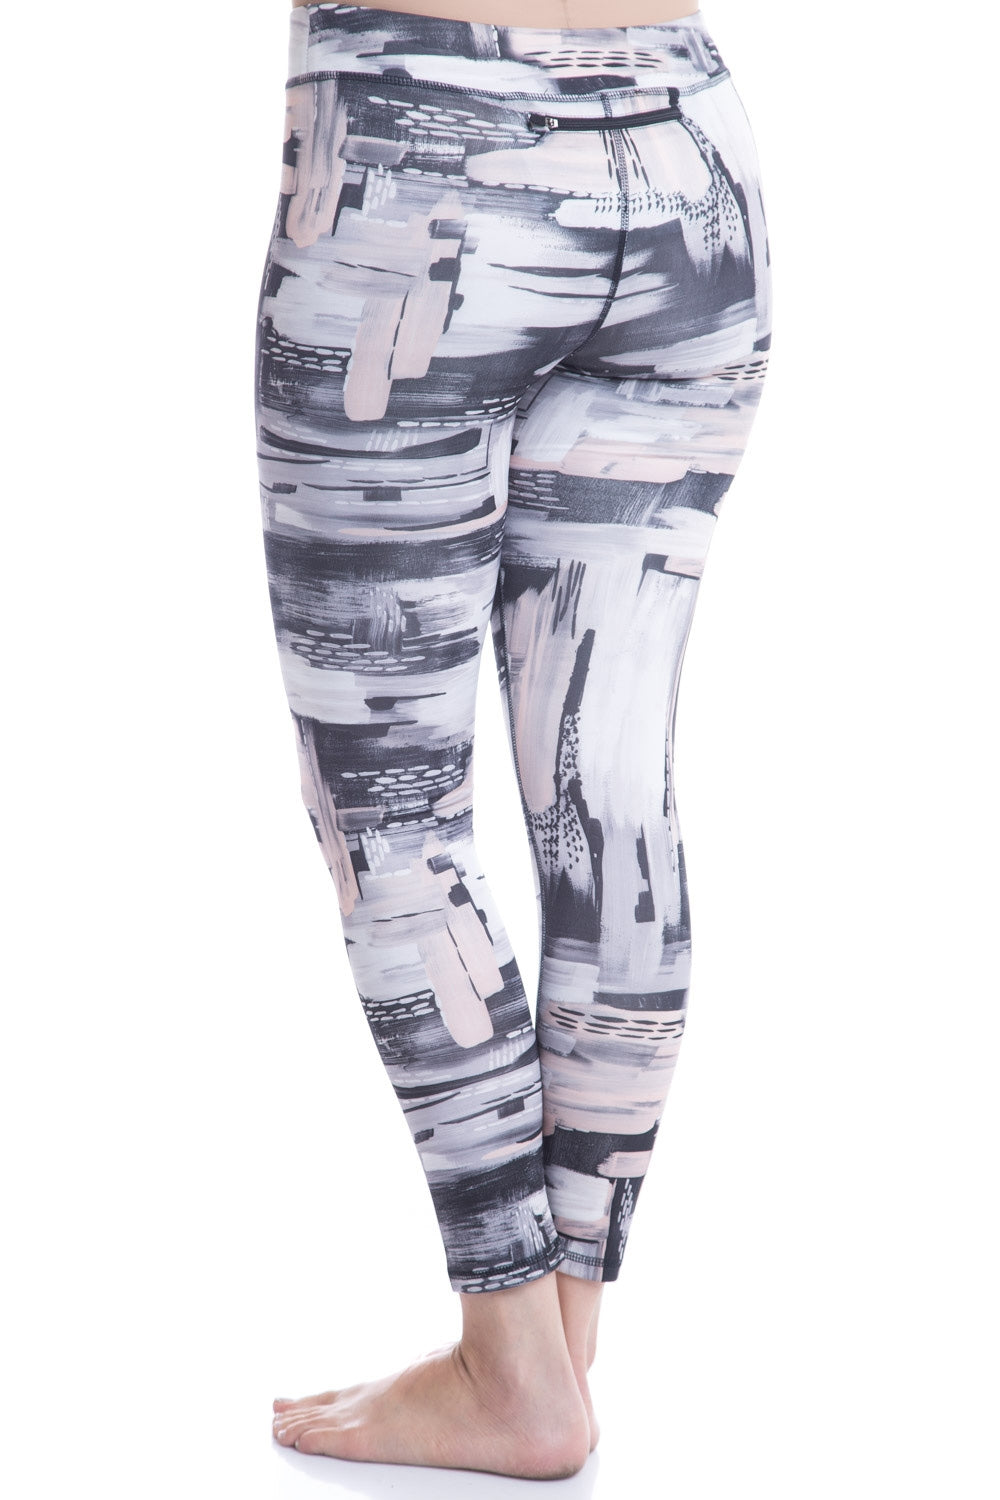 Type 2 Monet Yoga Pants